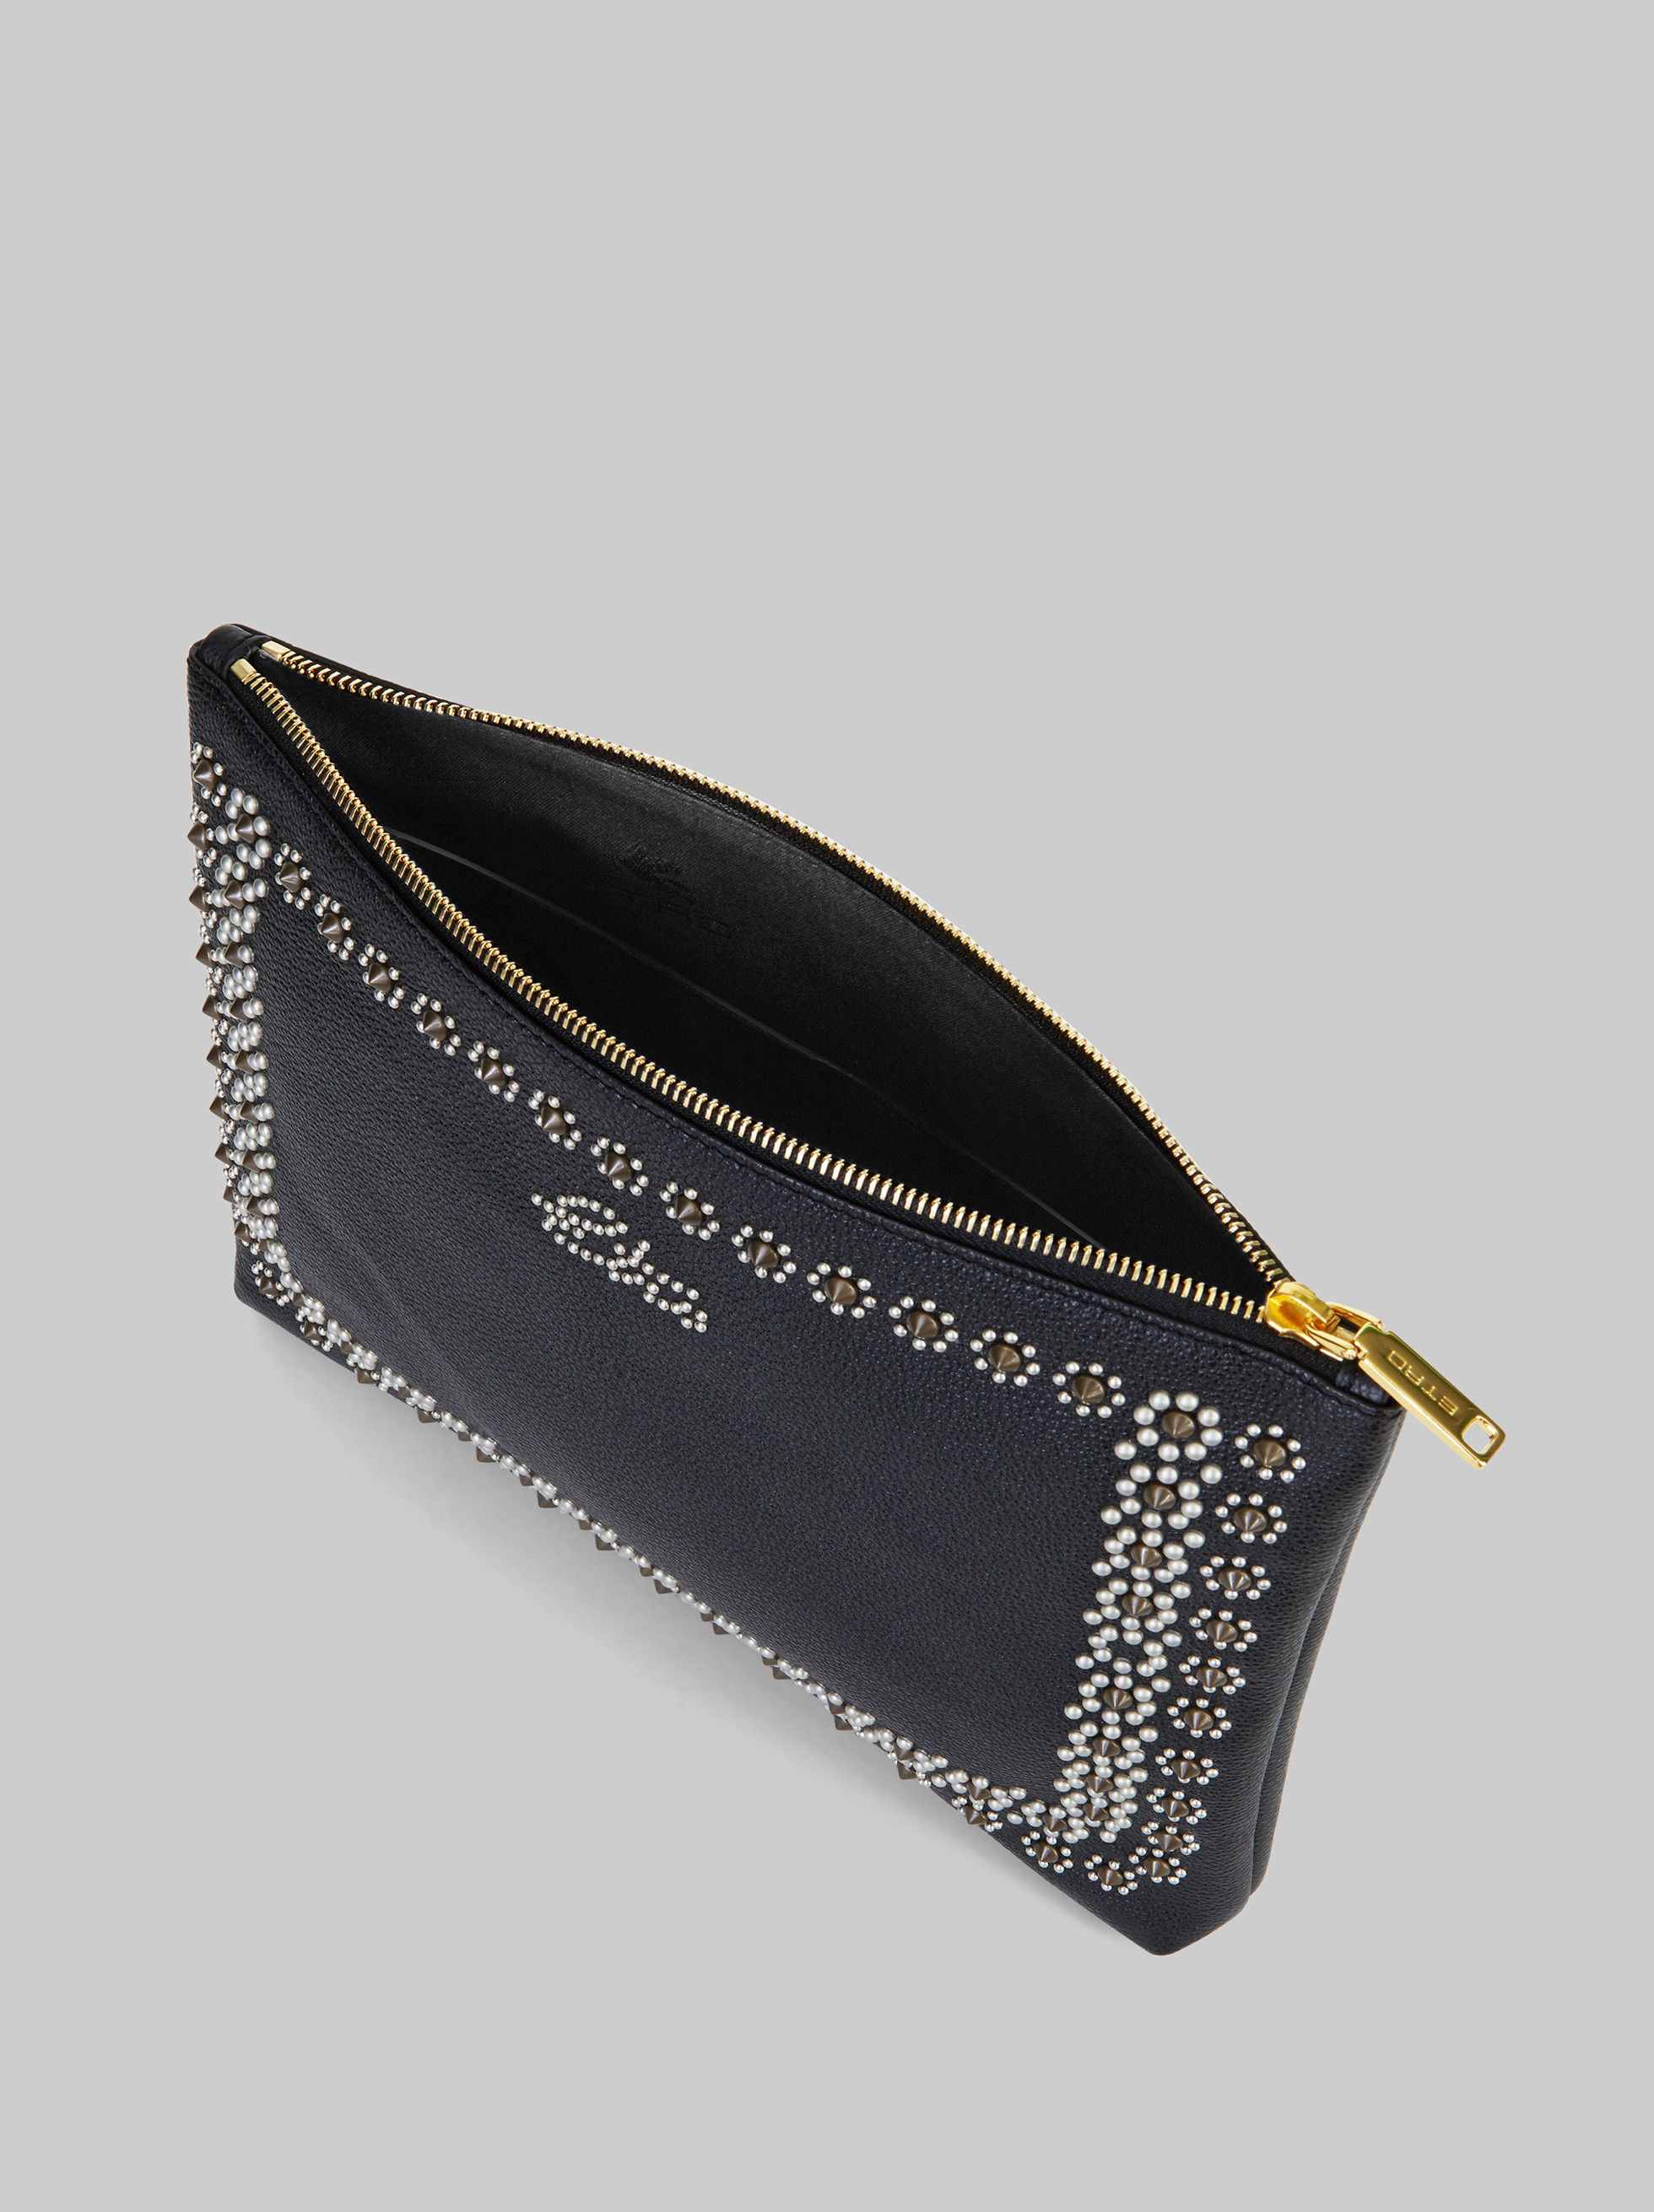 LEATHER POUCH WITH STUDS